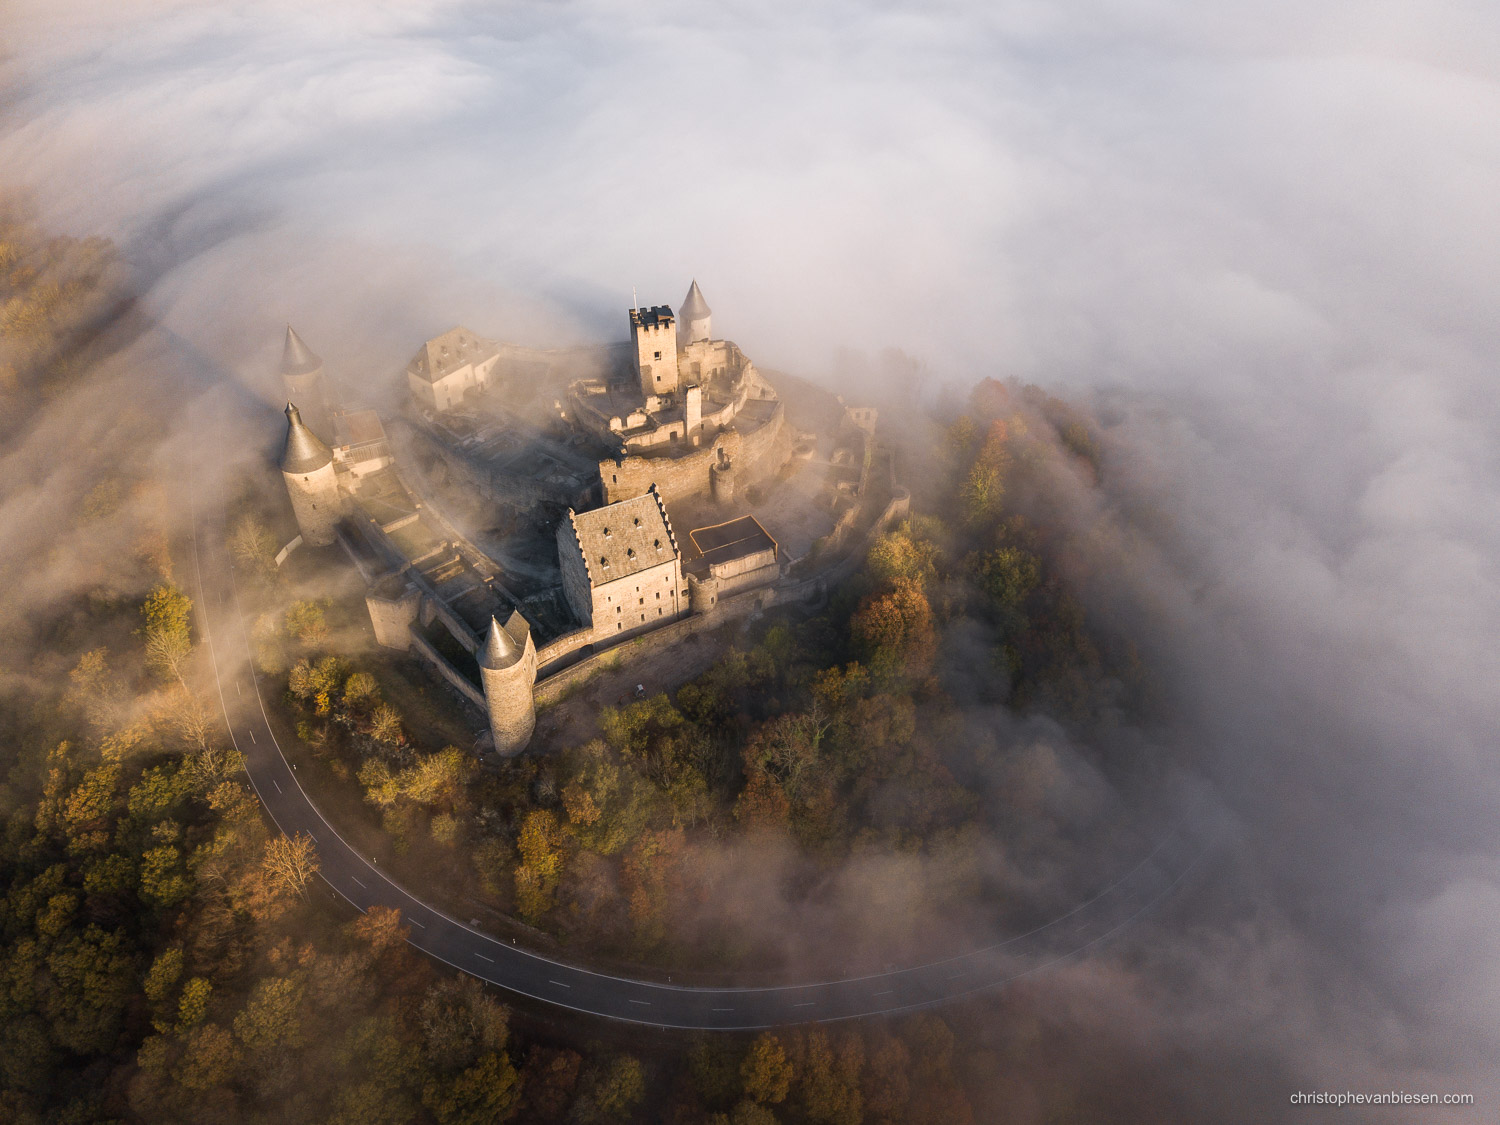 Bourscheid Castle in the fog - Chateau de Bourscheid - Luxembourg - Drone - Bourscheid Castle amidst autumn fog seen from the air - Ethereal Shores